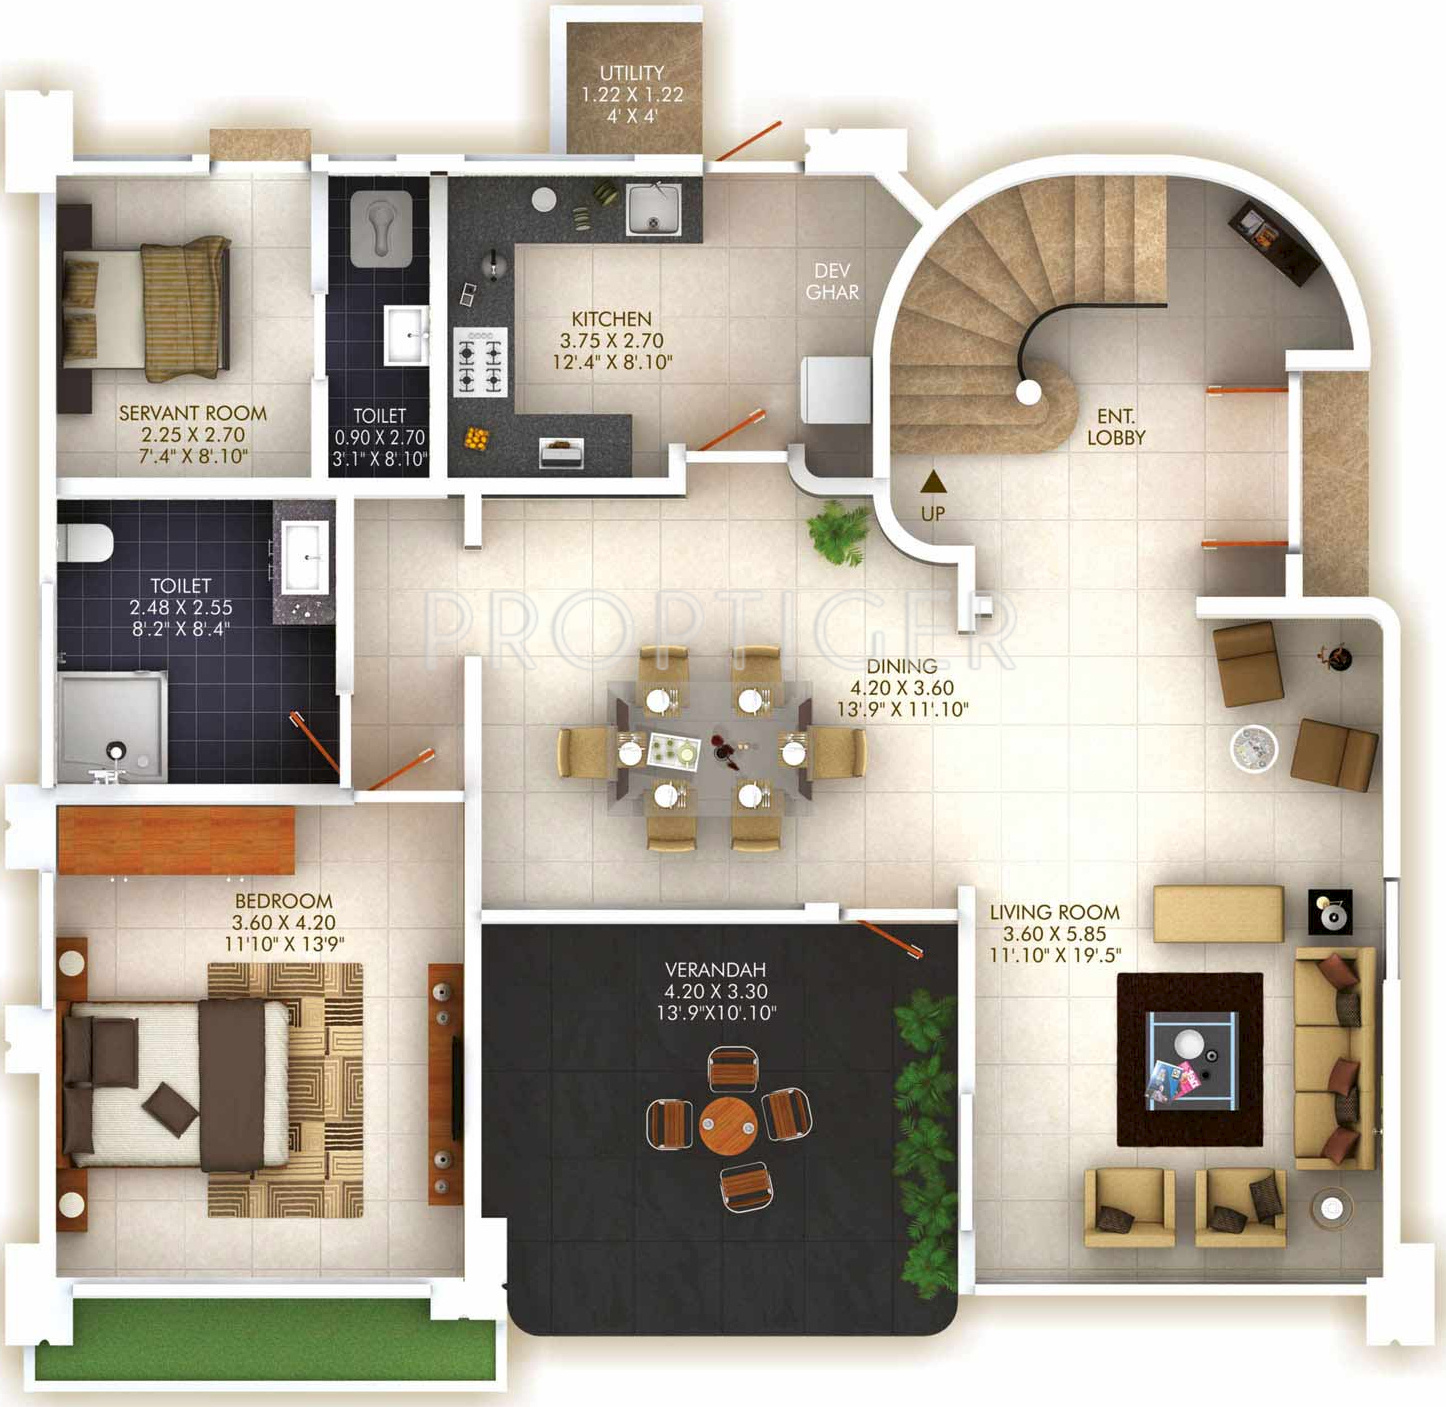 Dsk vishwa villa in dhayari pune price location map for Plan villa r 2